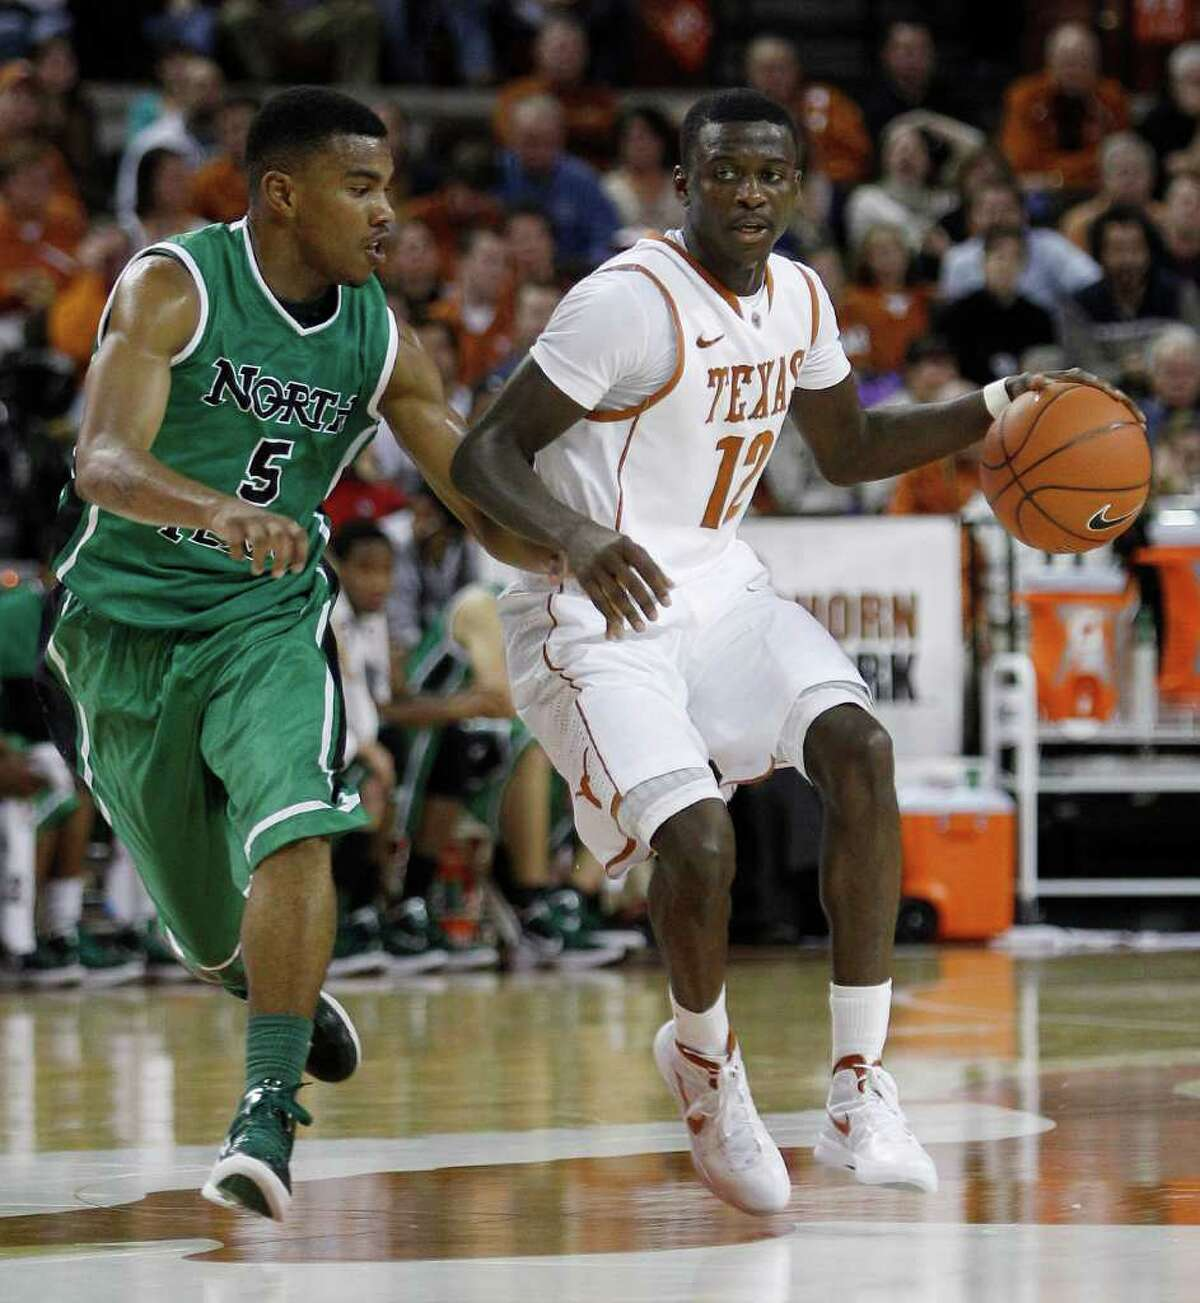 UT freshman Myck Kabongo (right), being guarded by North Texas' Chris Jones earlier this season, has impressed his teammates with his speed going up the court. He is averaging 10.8 points and 6.0 assists per game.